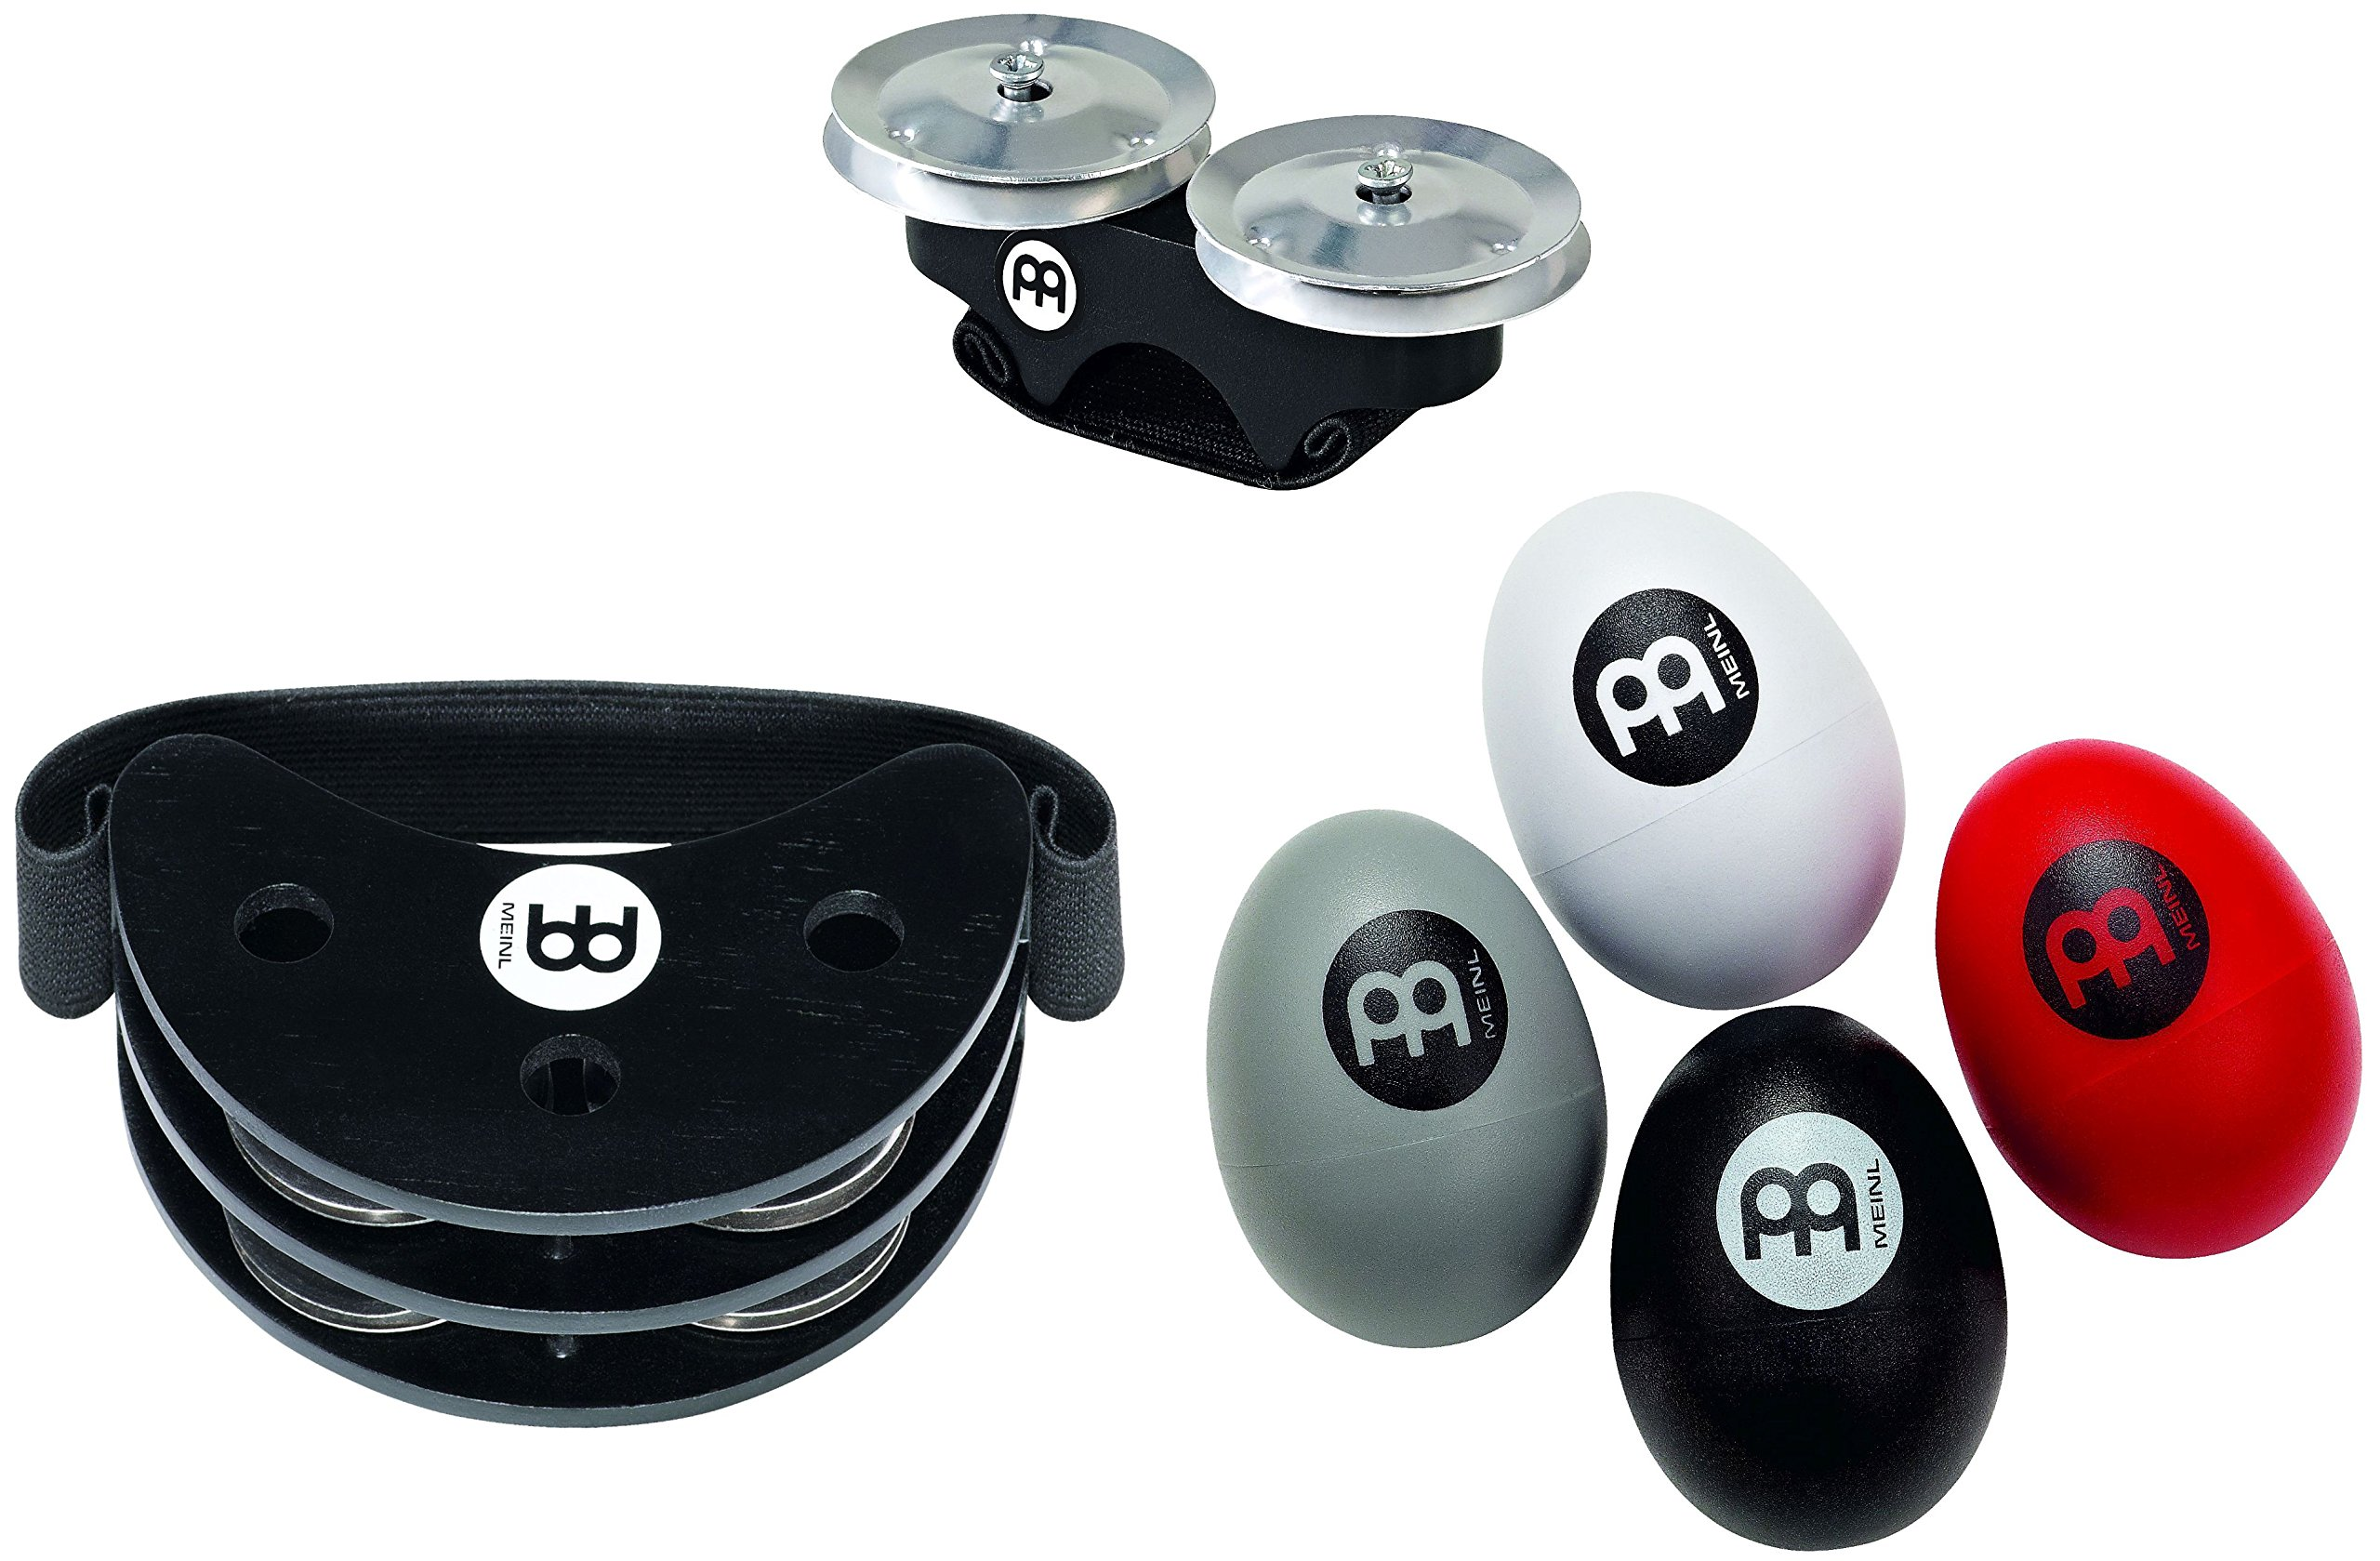 Meinl Percussion PP-3 Cajon Accessory Pack with Foot Tambourine, 4-Piece Egg Shaker Set with Different Volumes, and FREE Finger Jingles